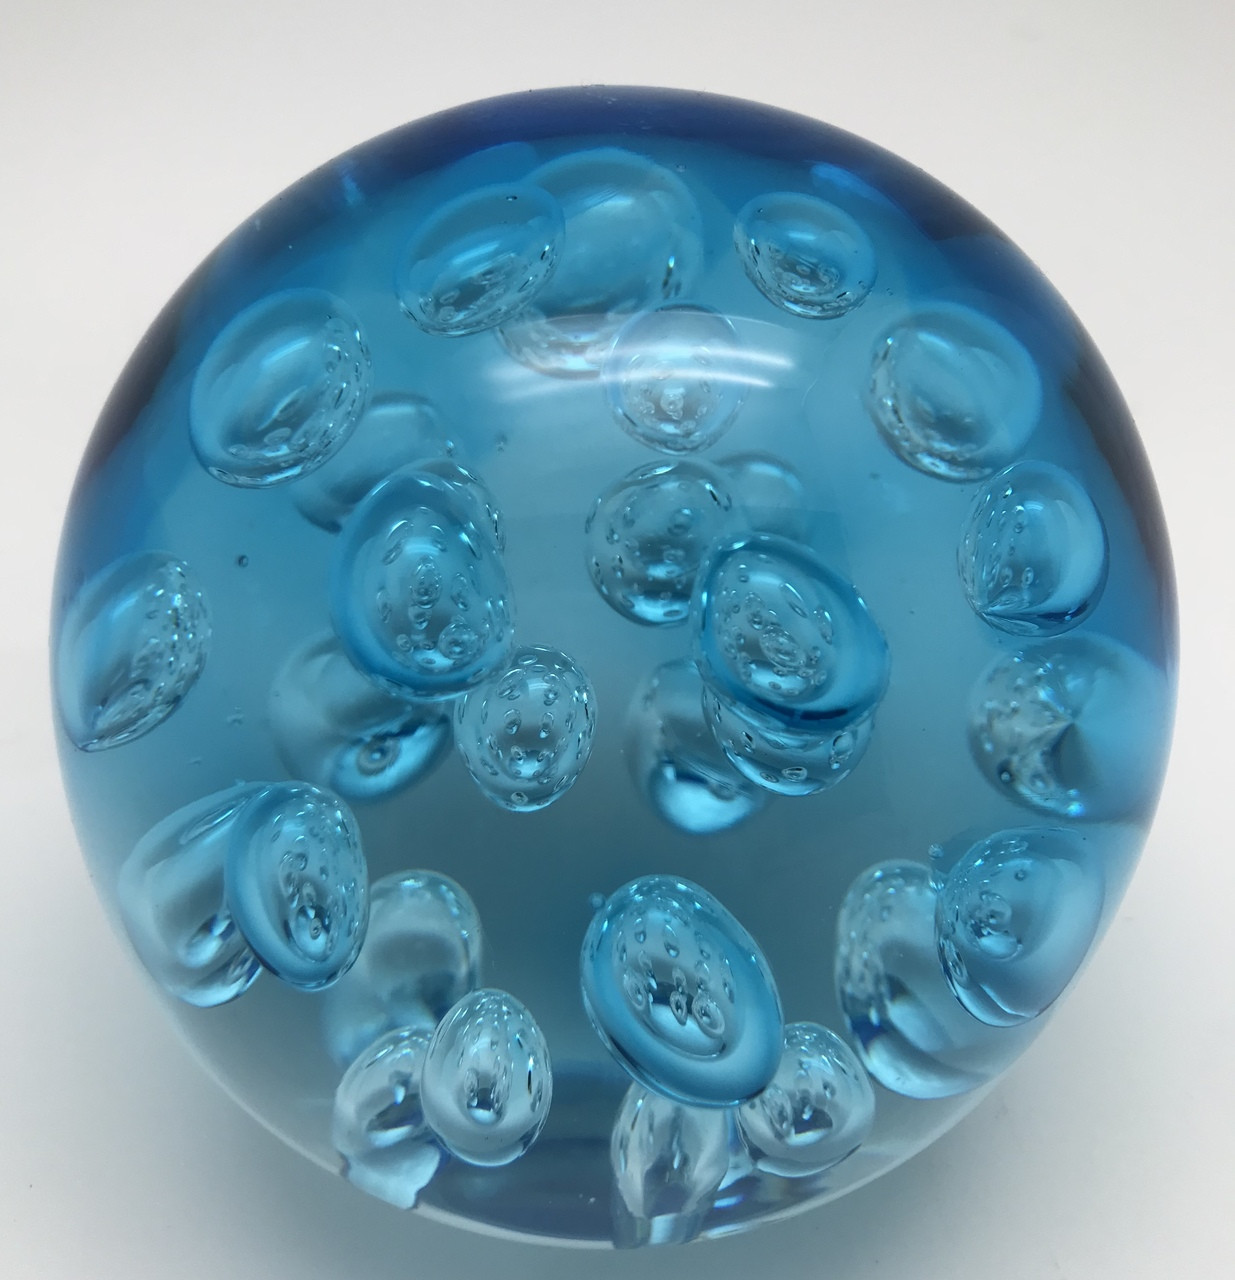 Aquarine Spa Large Spa Bubbles Paperweight Aquamarine Handcrafted Blown Glass Art